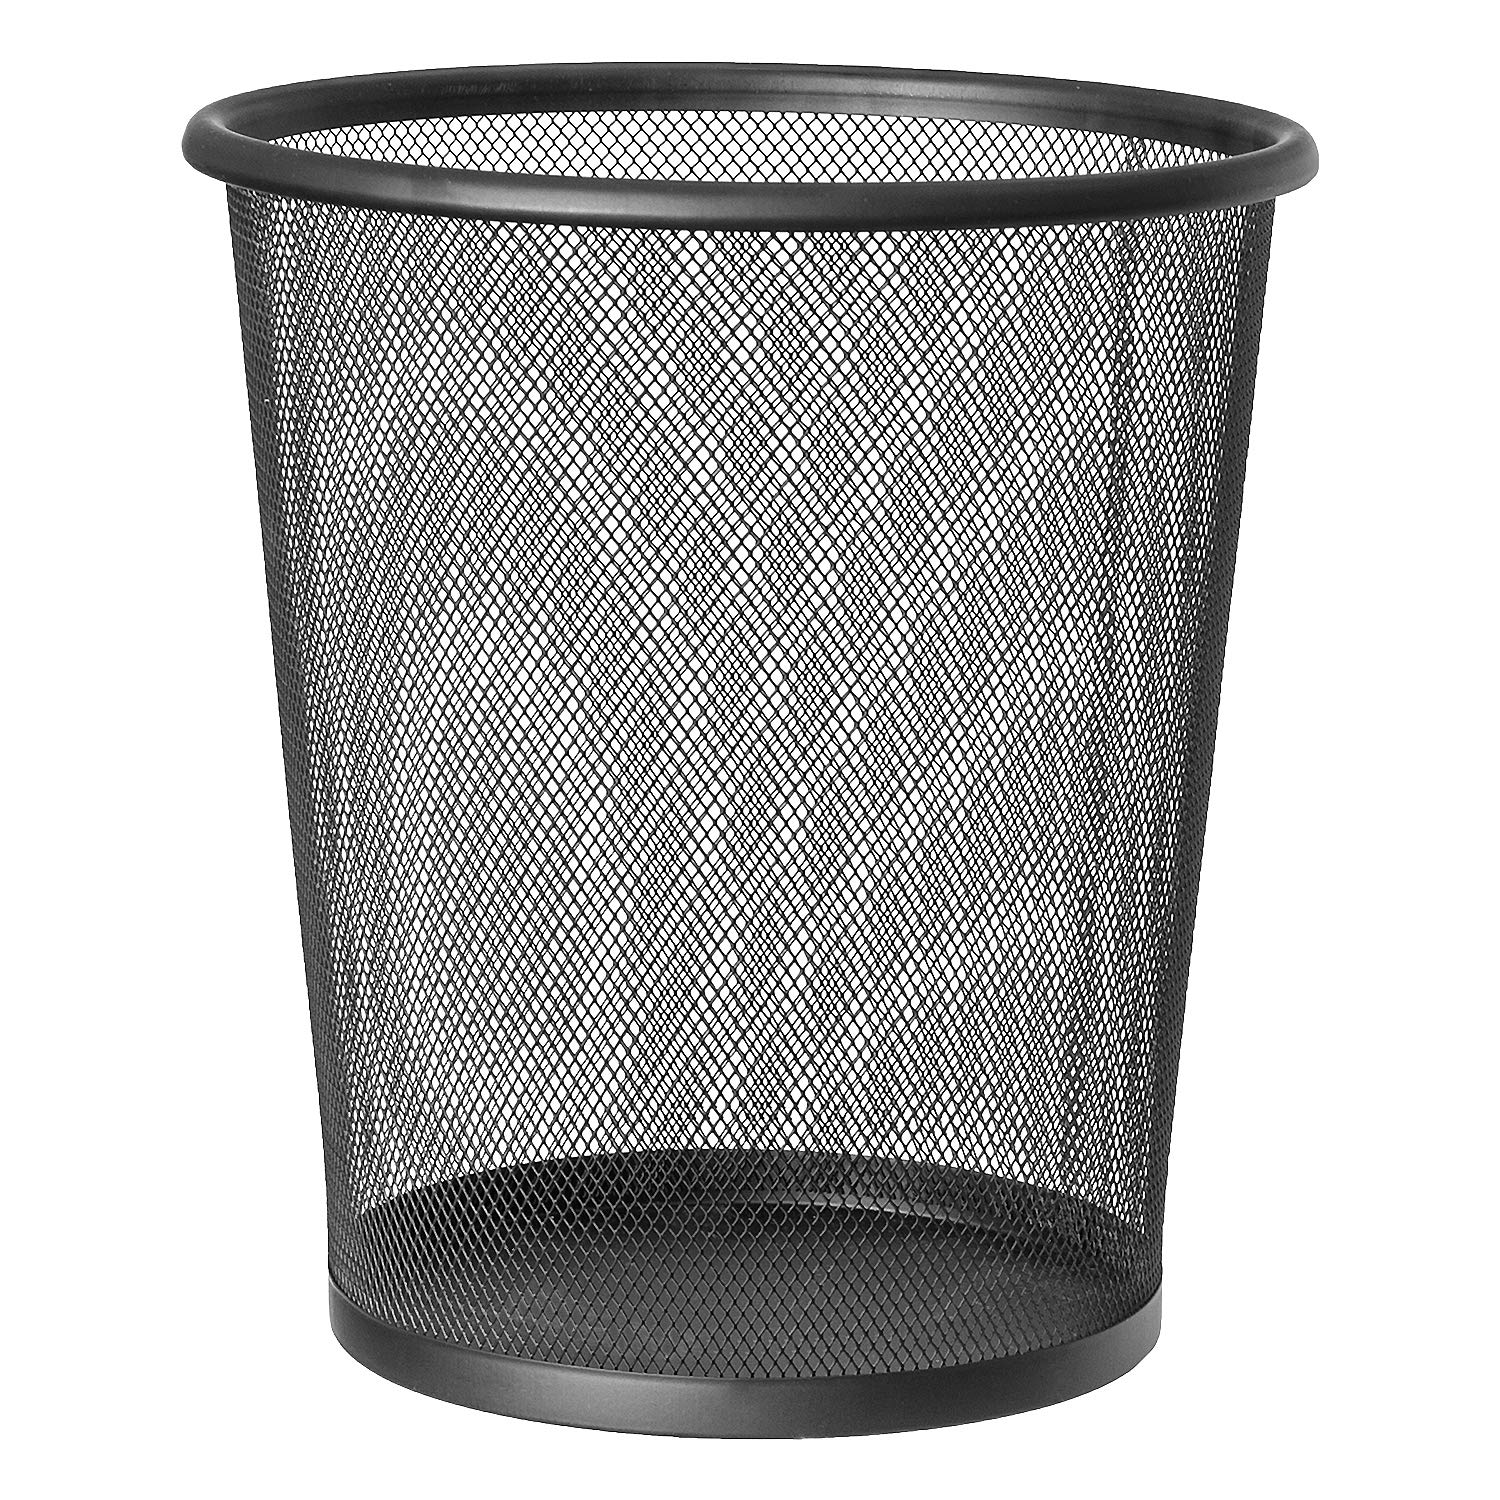 ArtMoon Mesh Round Waste Basket for Home or Office, Wire Mesh Trash Can, Made of Powder-Coated Steel, Capacity of 3.2 Gallon (12L), Black